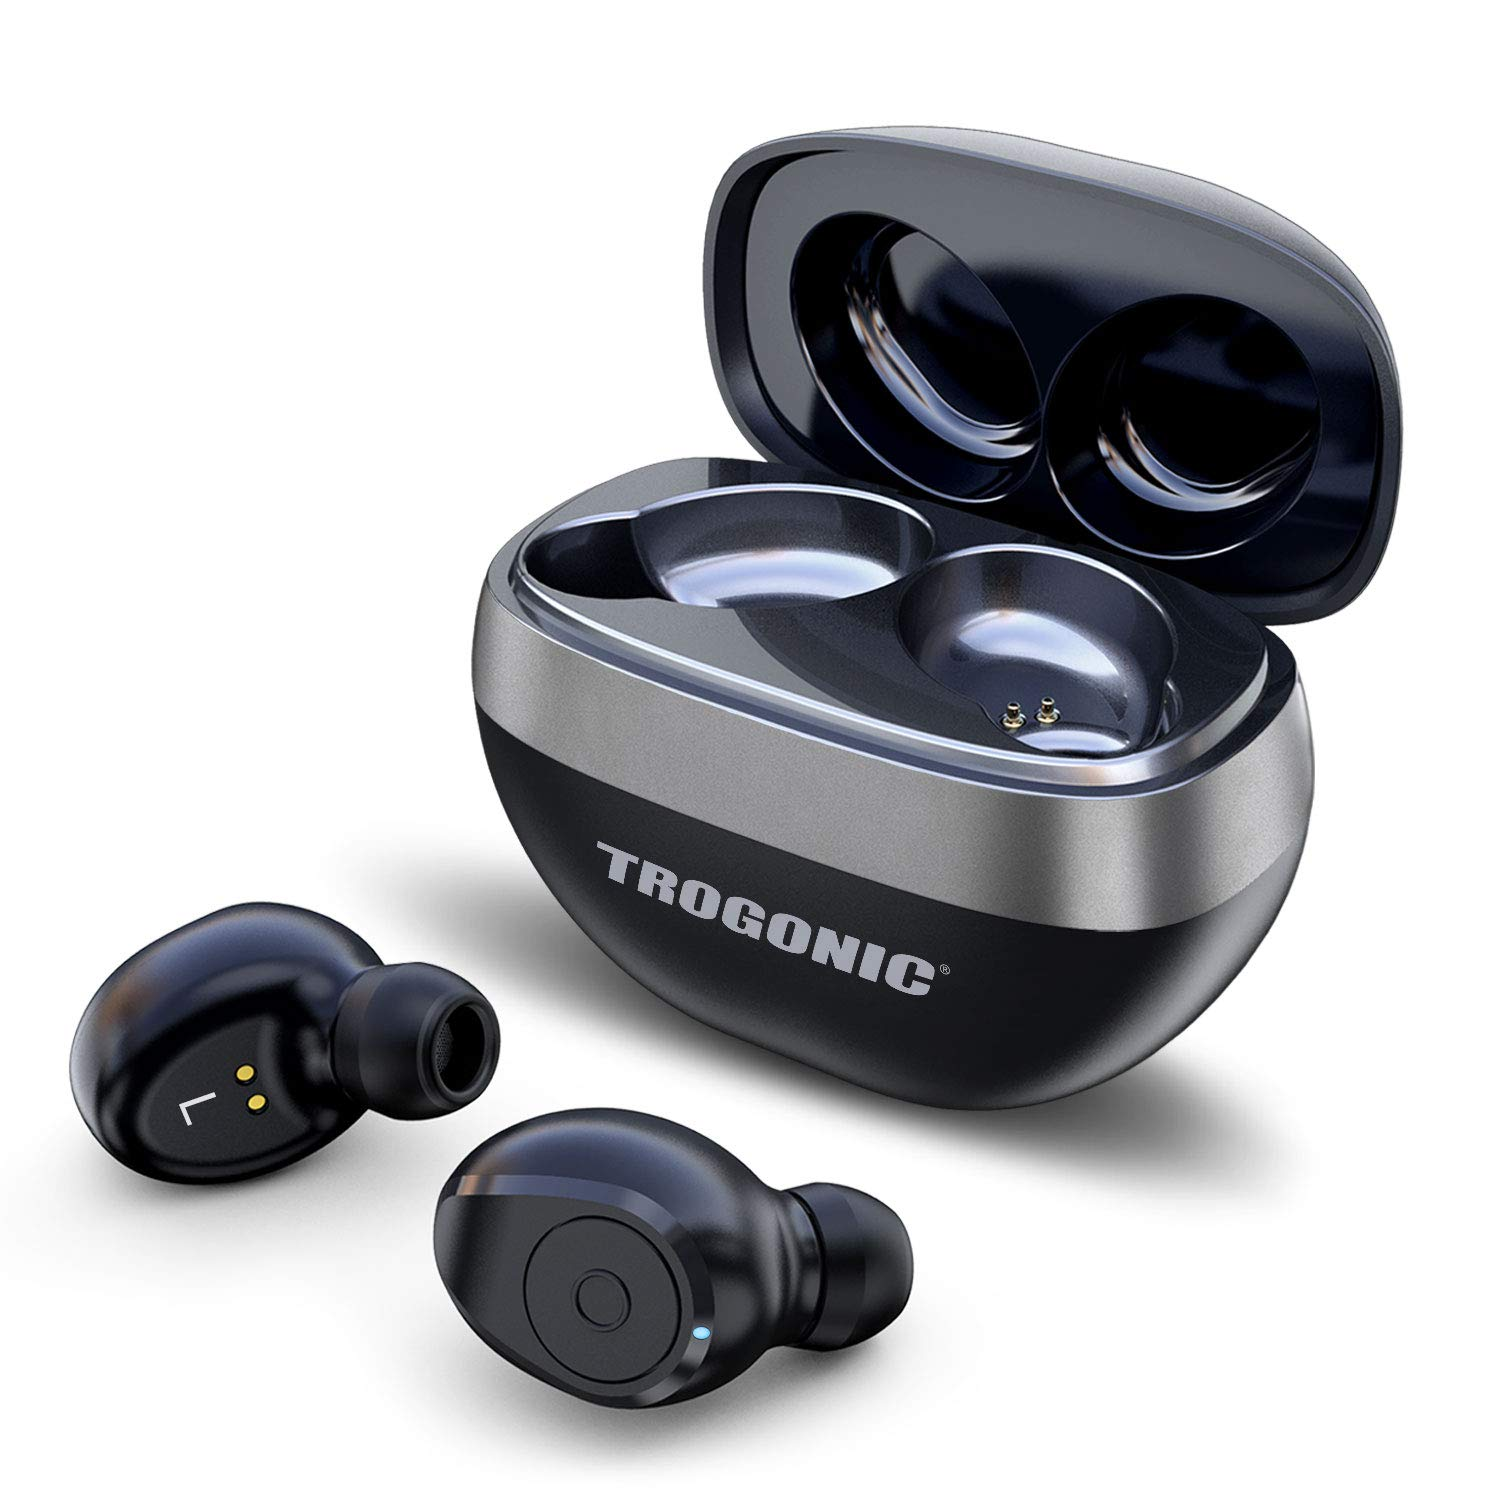 Amazon Com Trogonic Te1 True Wireless Earbuds Tws 5 0 Ipx 5 Sweatproof Bluetooth Earbuds Stereo Headphones In Ear Built In Mic Headset Premium Sound With Deep Bass For Sport Electronics